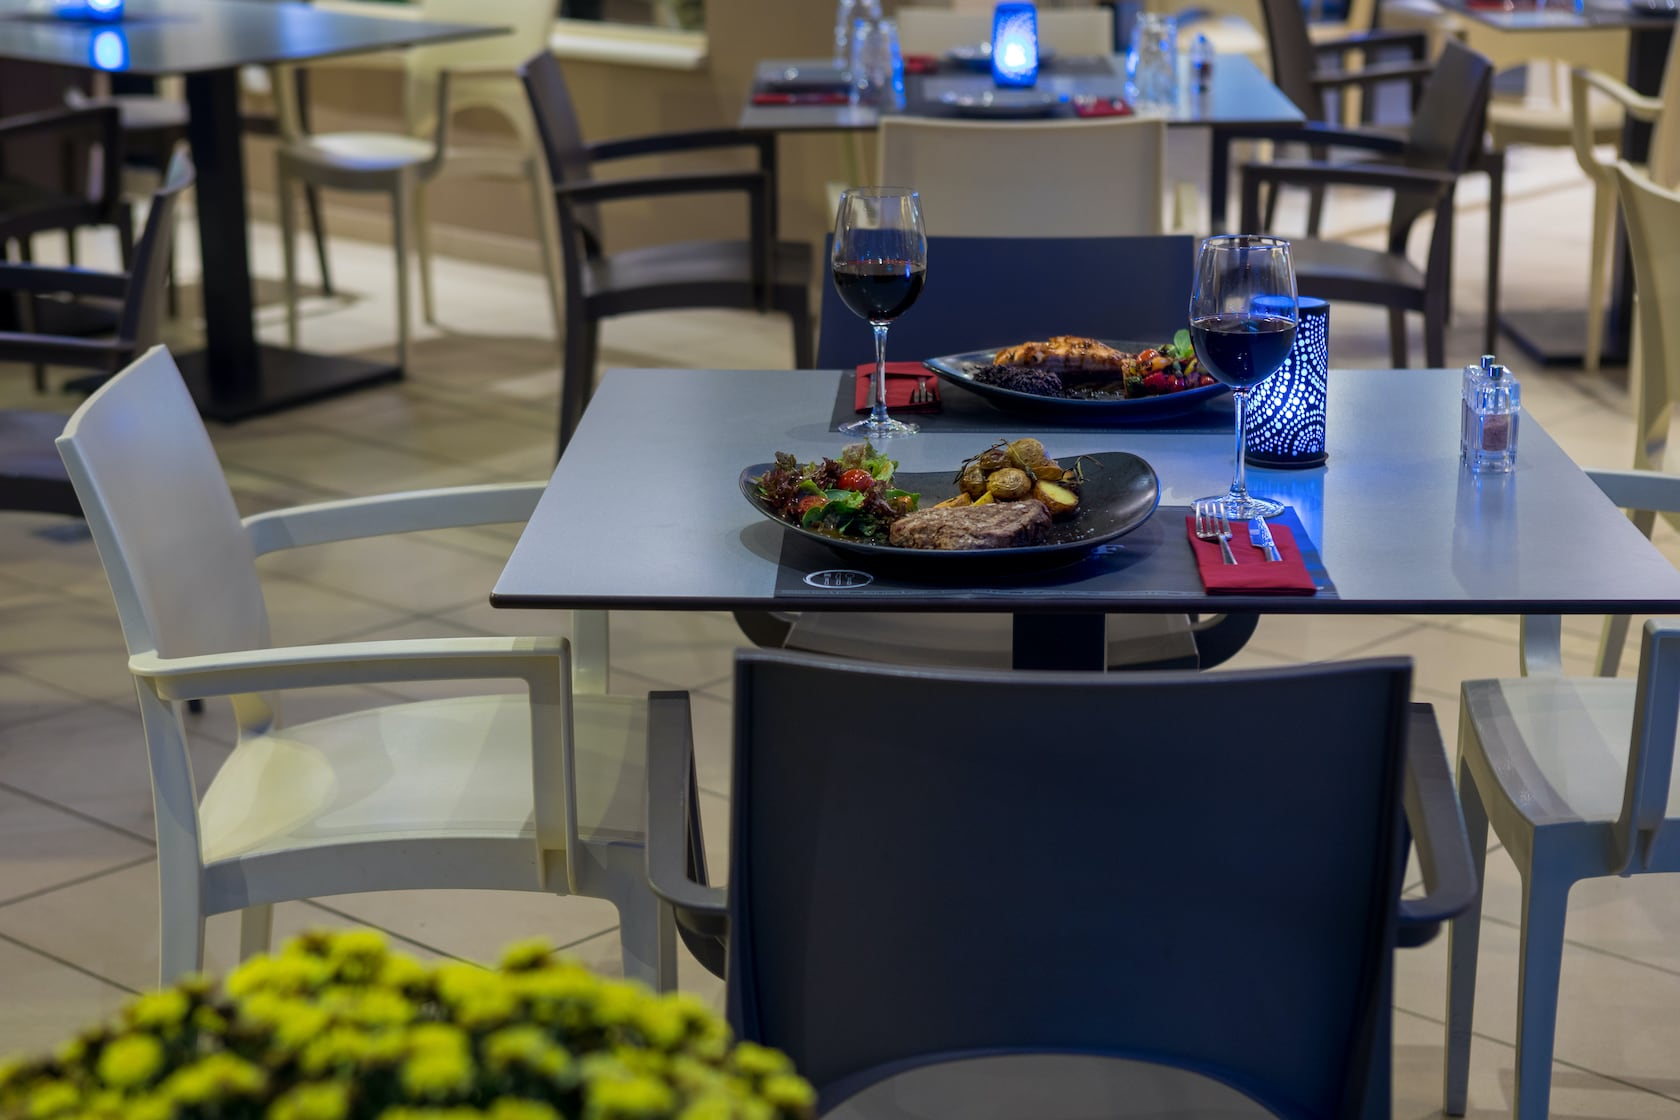 A plate with grilled meat, salad and glasses with wine in the Valentino Pasta & Grill.